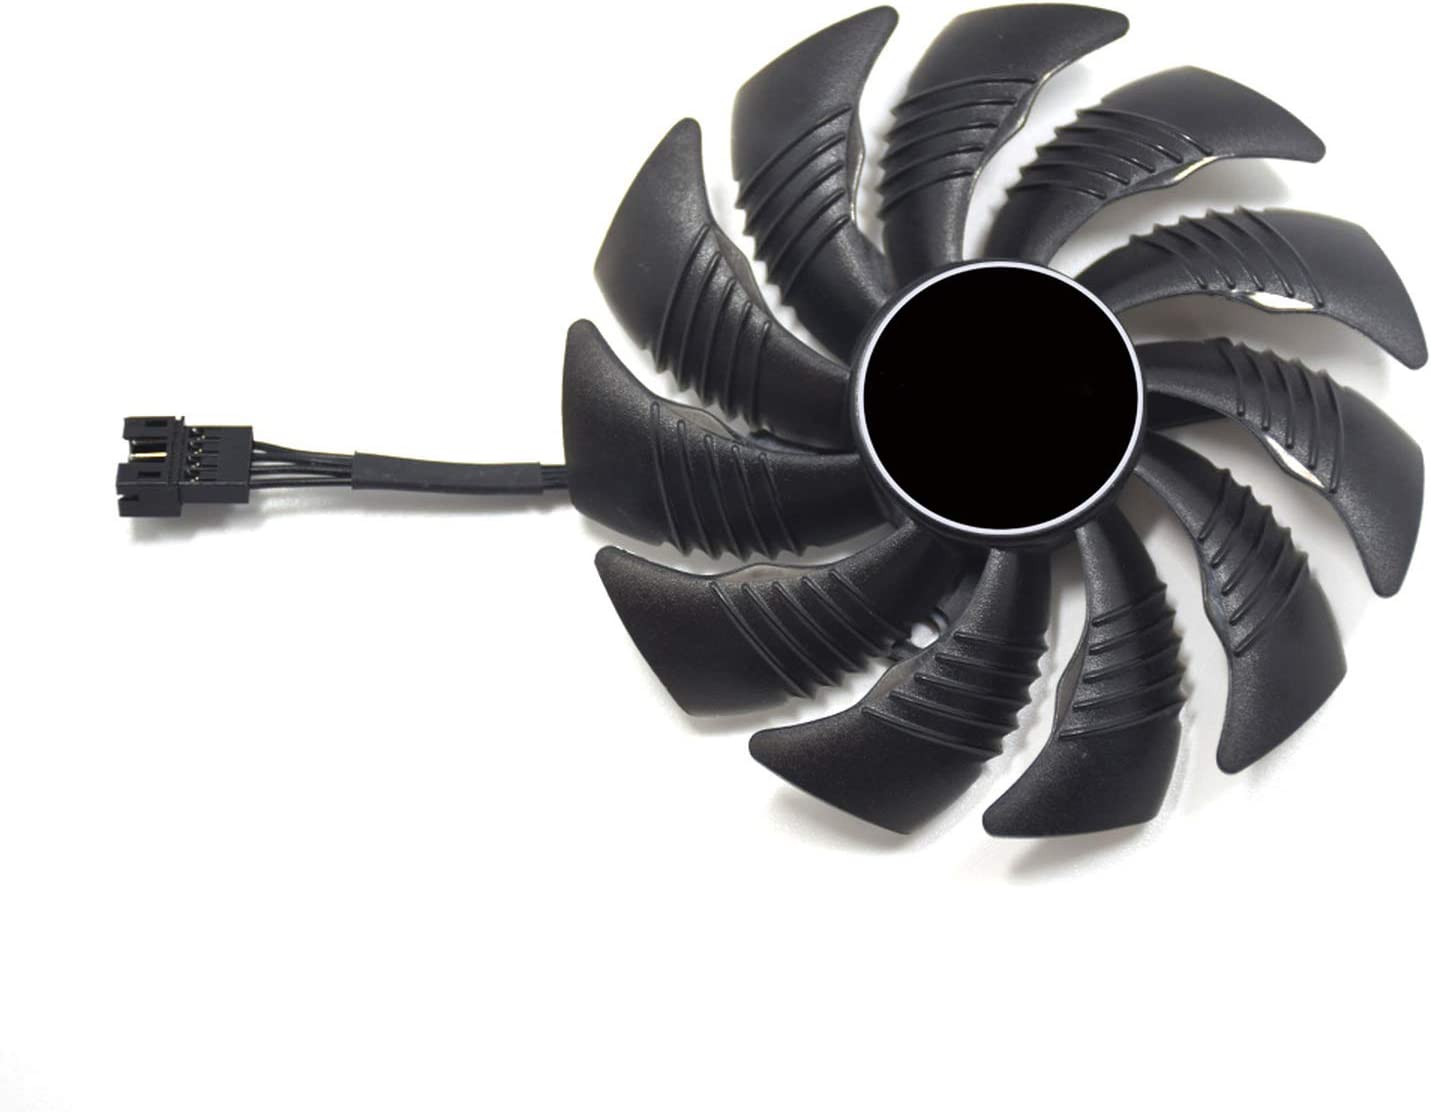 Gigabyte GTX 1050 1060 1070 RX 470 480 570 G1 Graphics Card Cooling Fan as Replacement 90mm PLD09210S12HH T129215SU 87MM